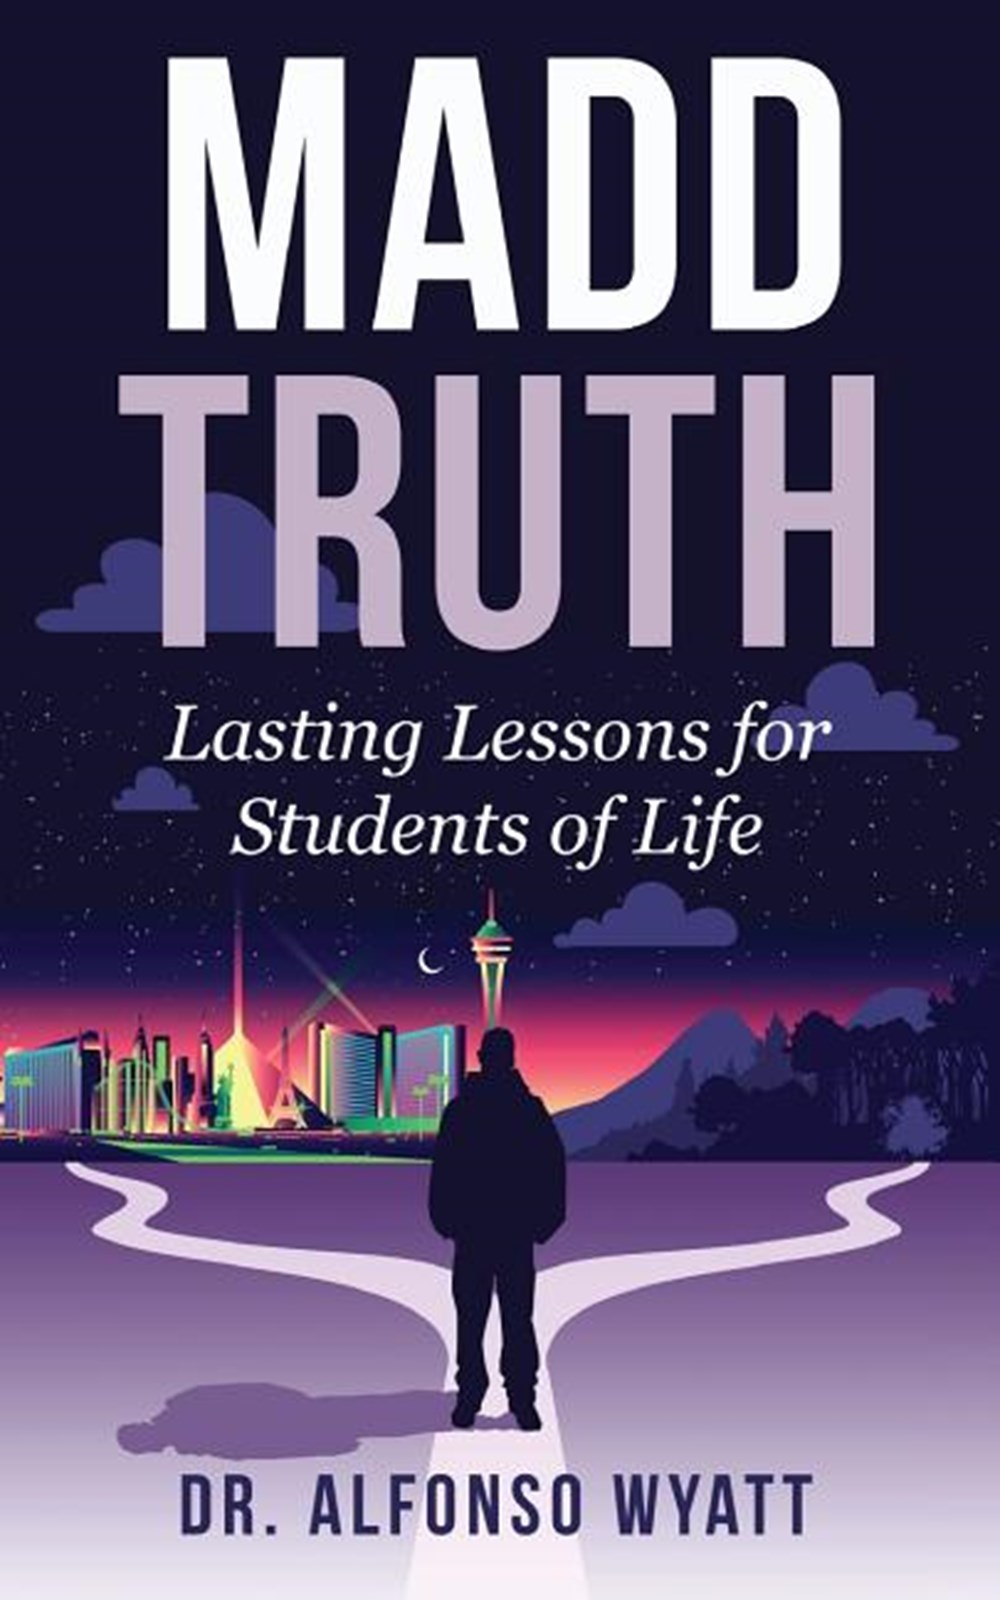 Madd Truth Lasting Lessons for Students of Life